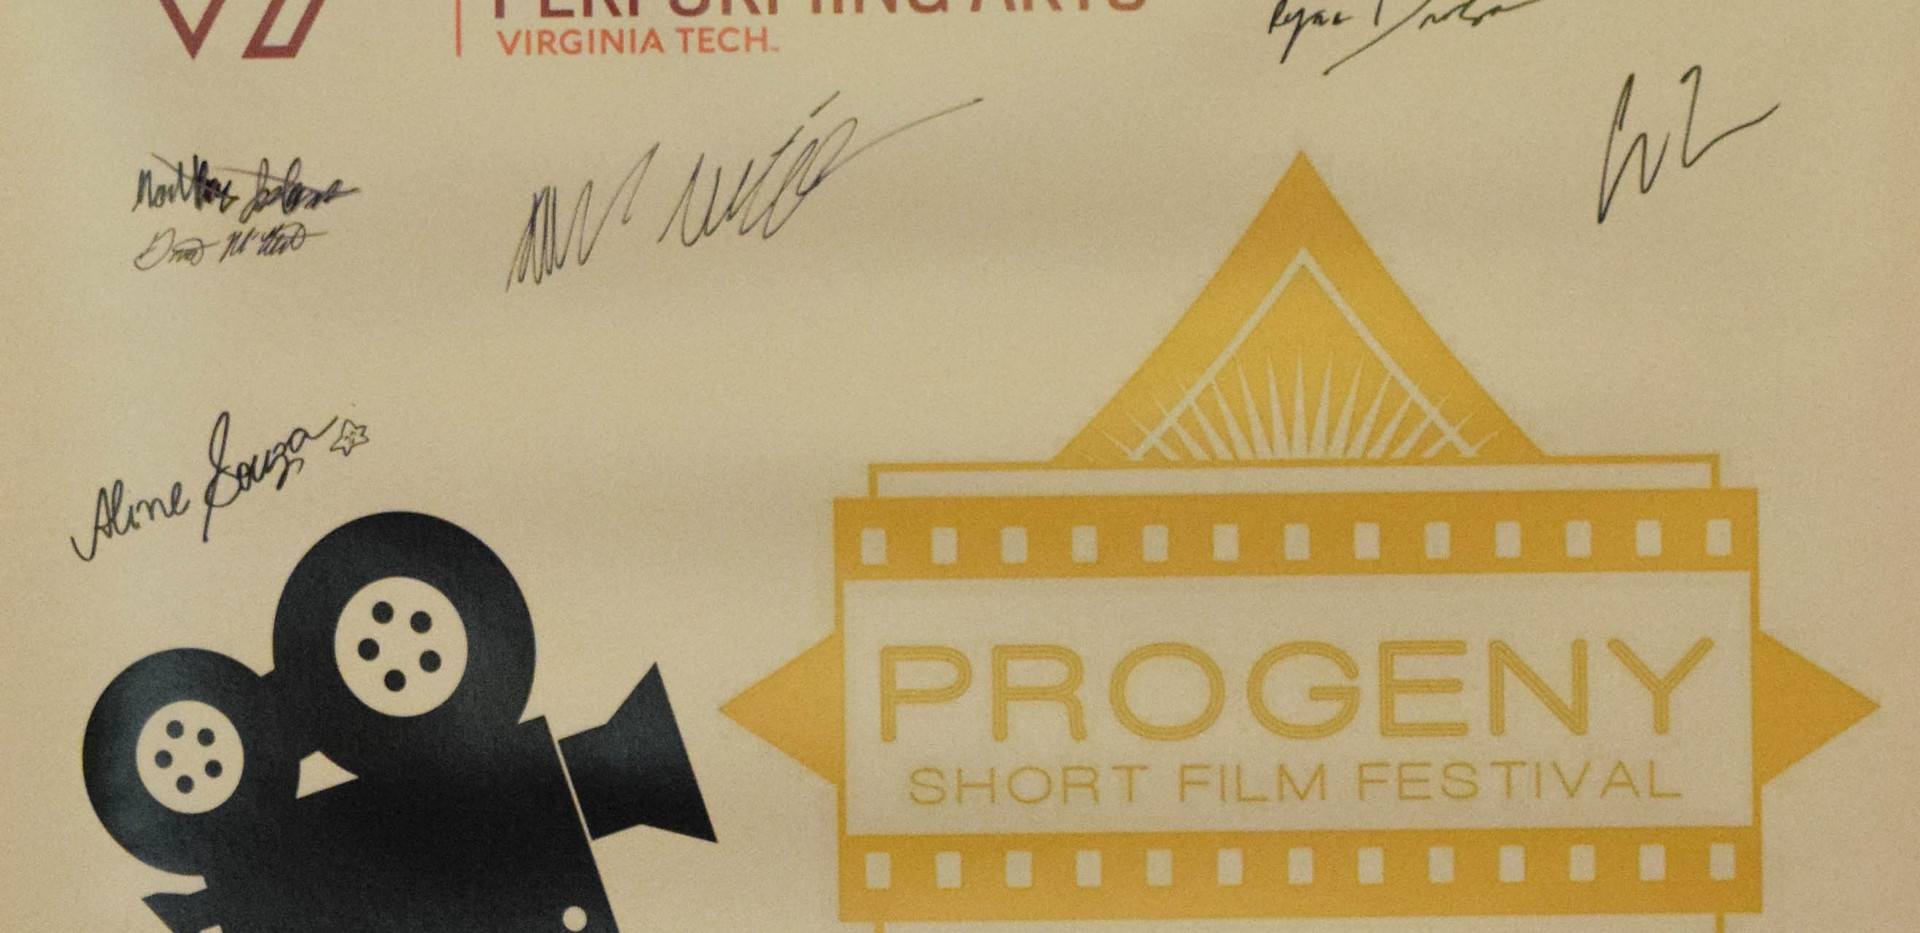 The official Progeny 2018 poster, signed by filmmakers in attendance.